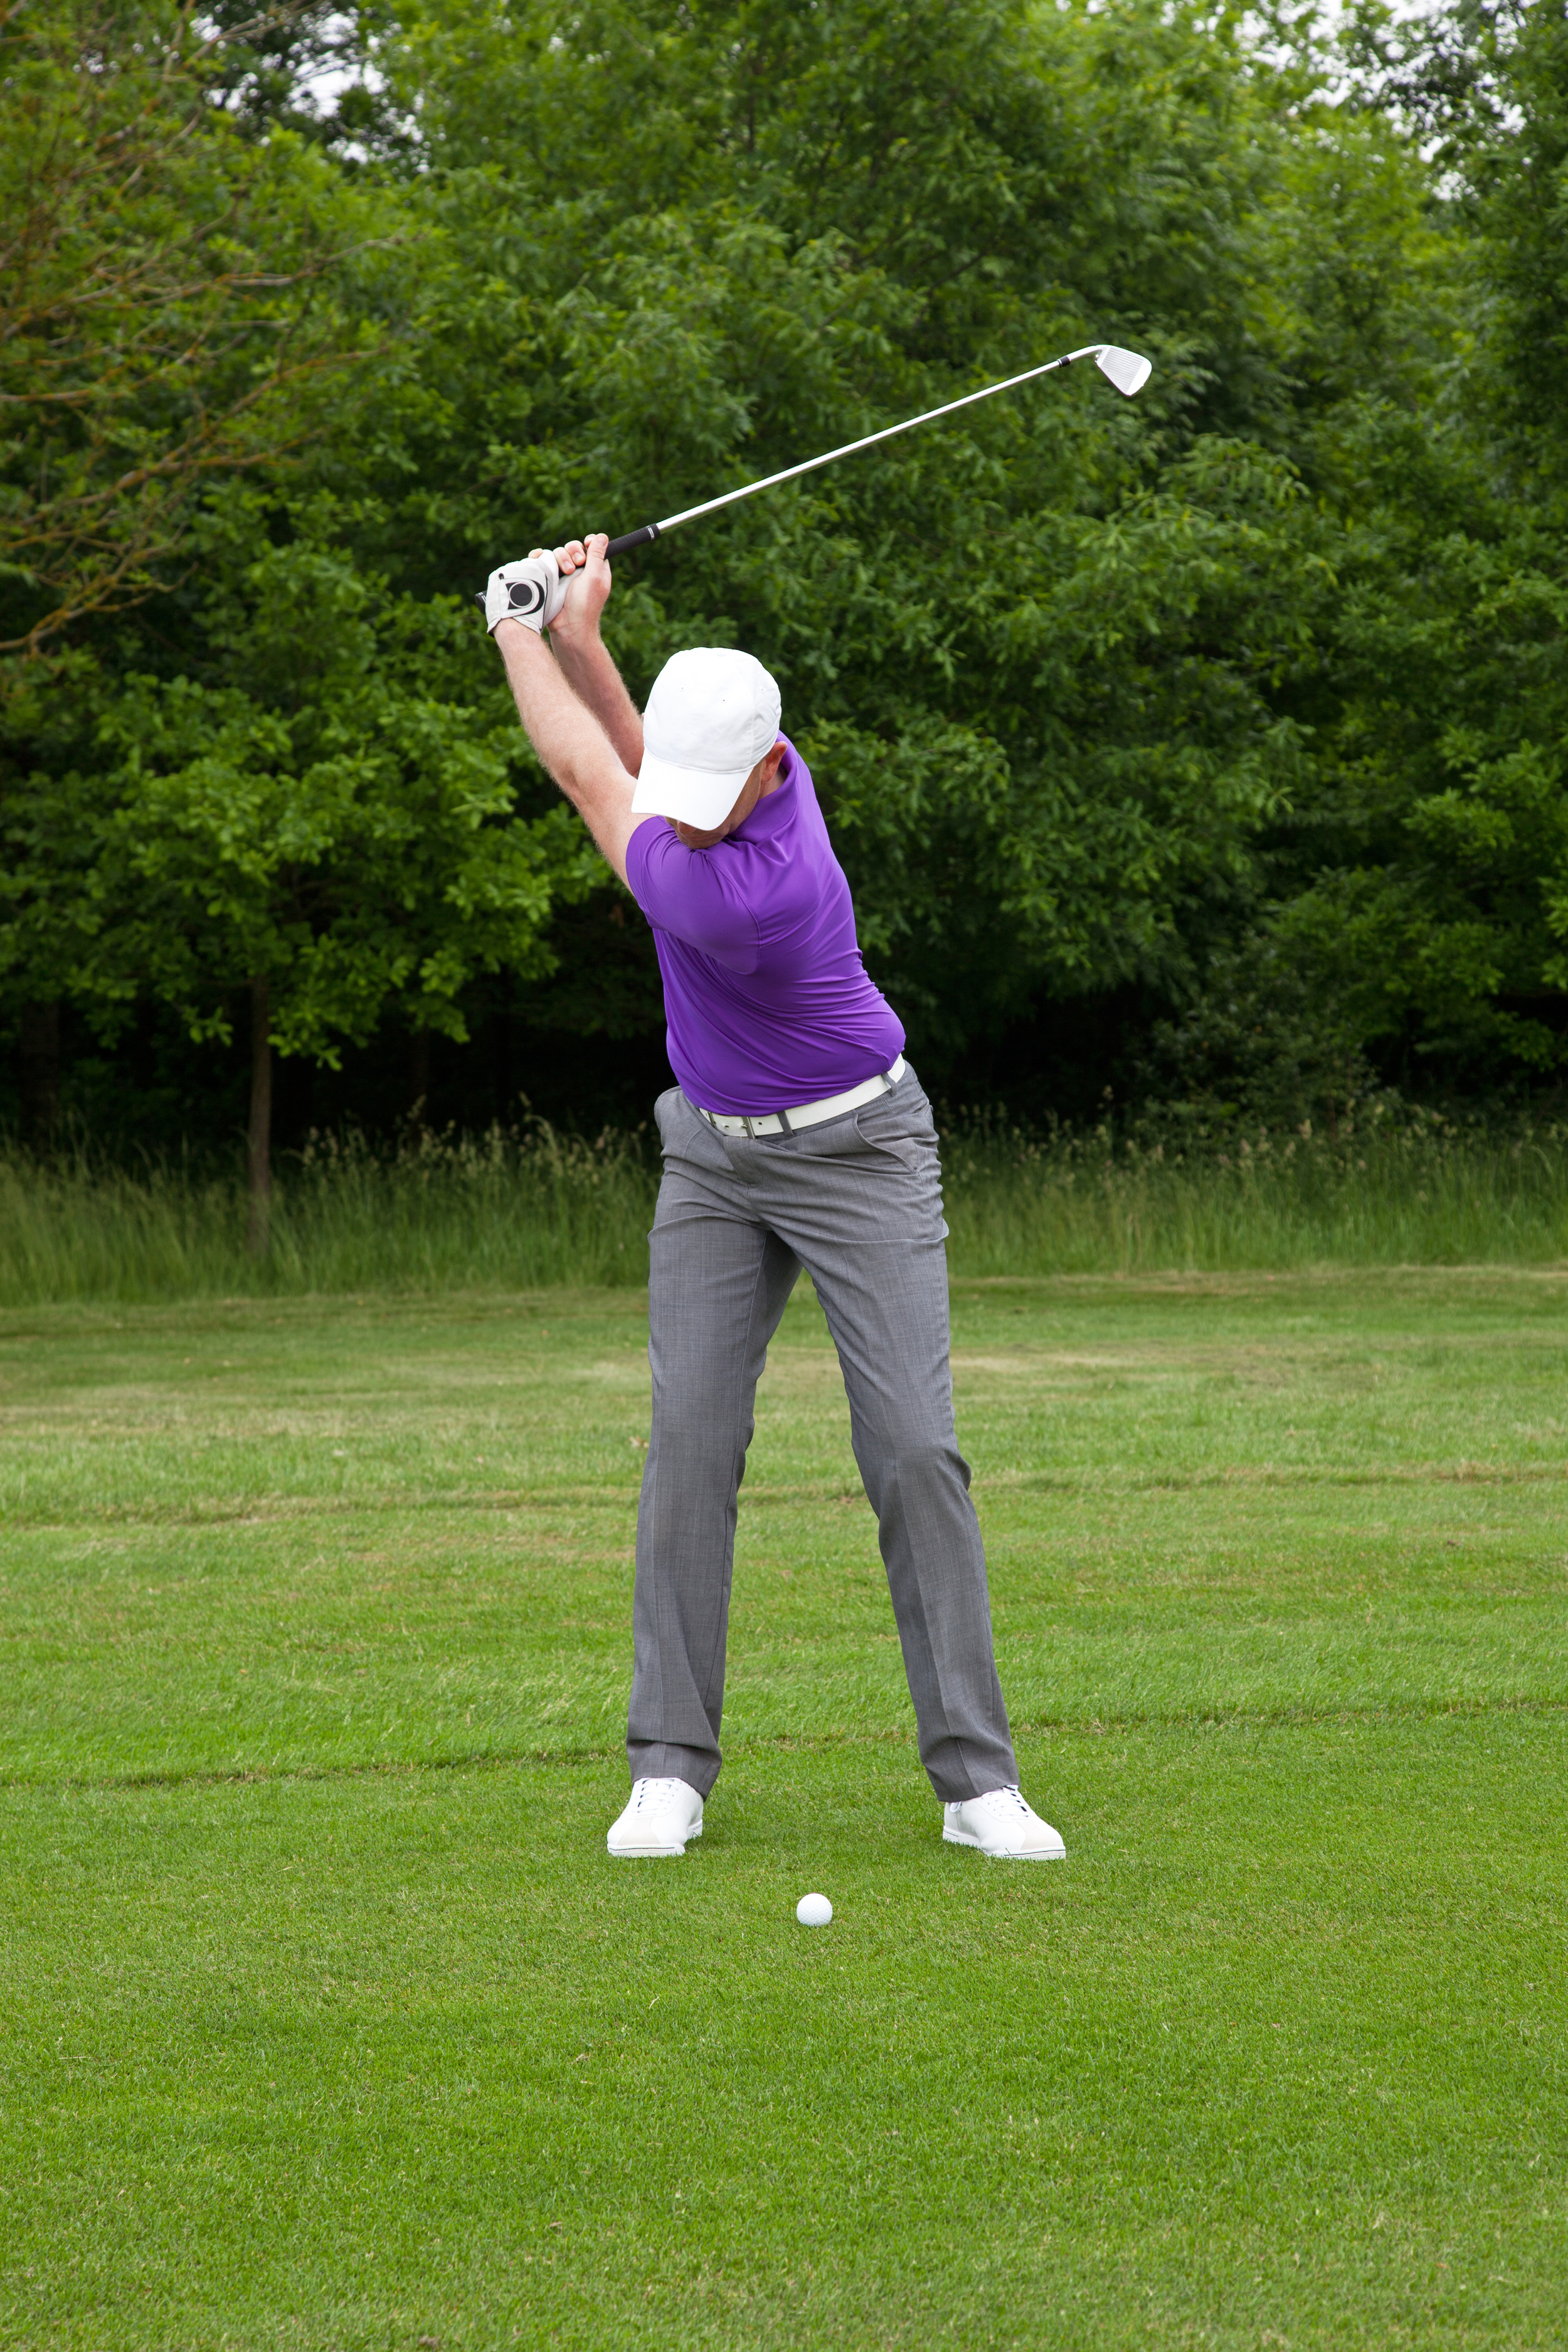 Getting the right swing for you can really help. Limitless Golf will get you there.